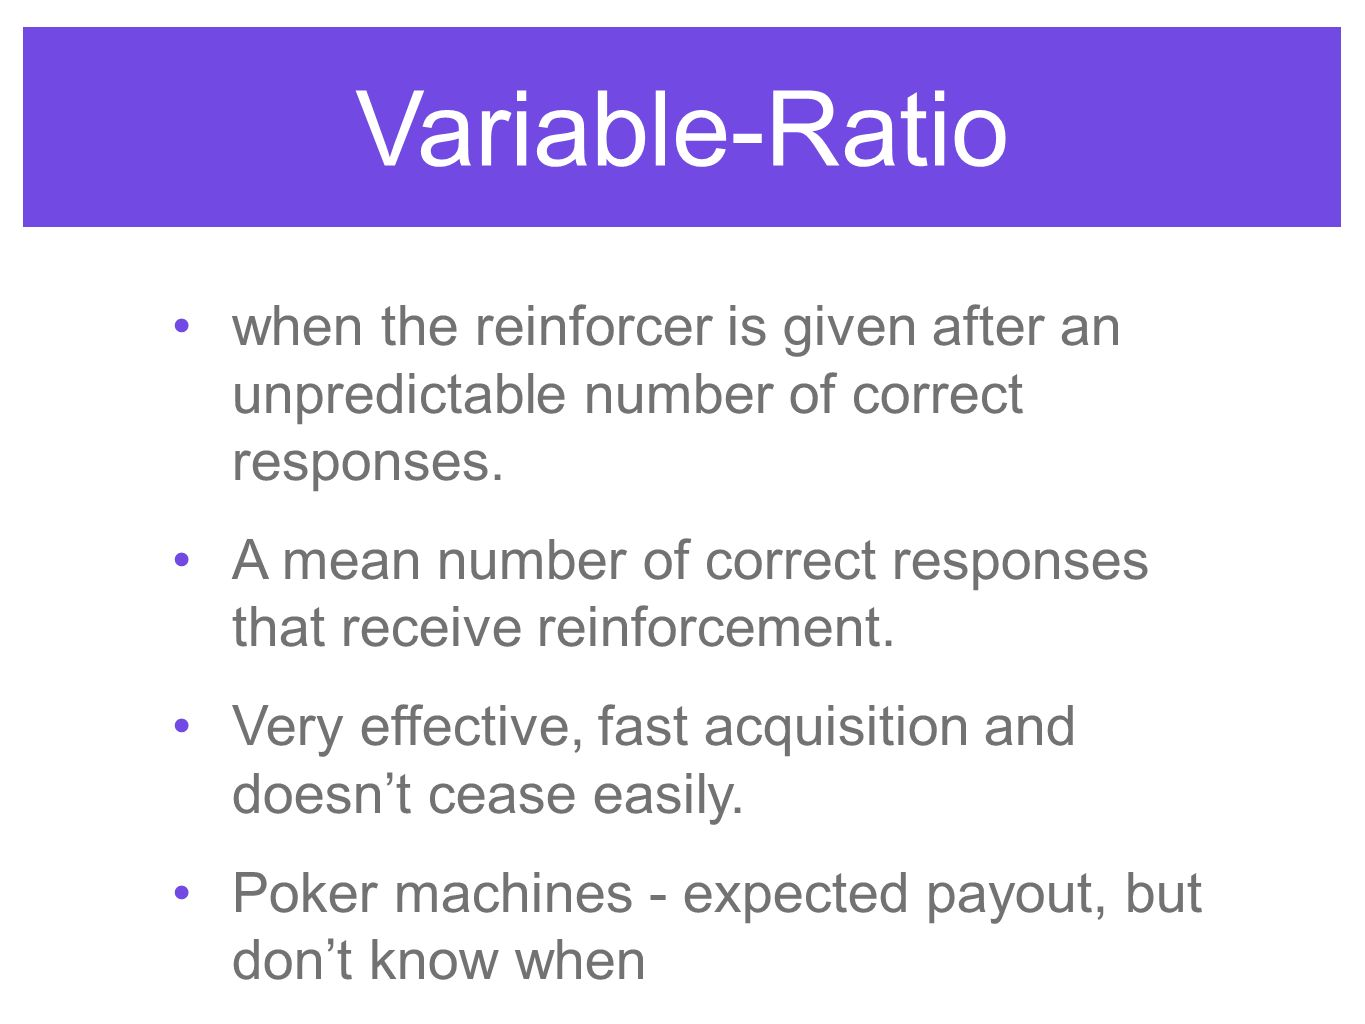 Variable-Ratio when the reinforcer is given after an unpredictable number of correct responses.